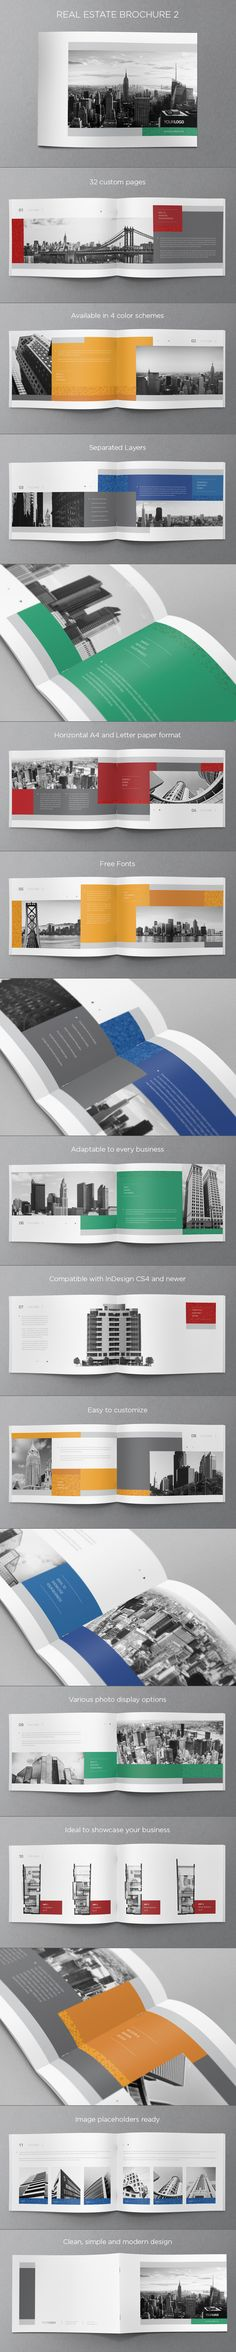 Real Estate Brochure. Download here: http://graphicriver.net/item/real-estate-brochure-2/5935898 #design #brochure